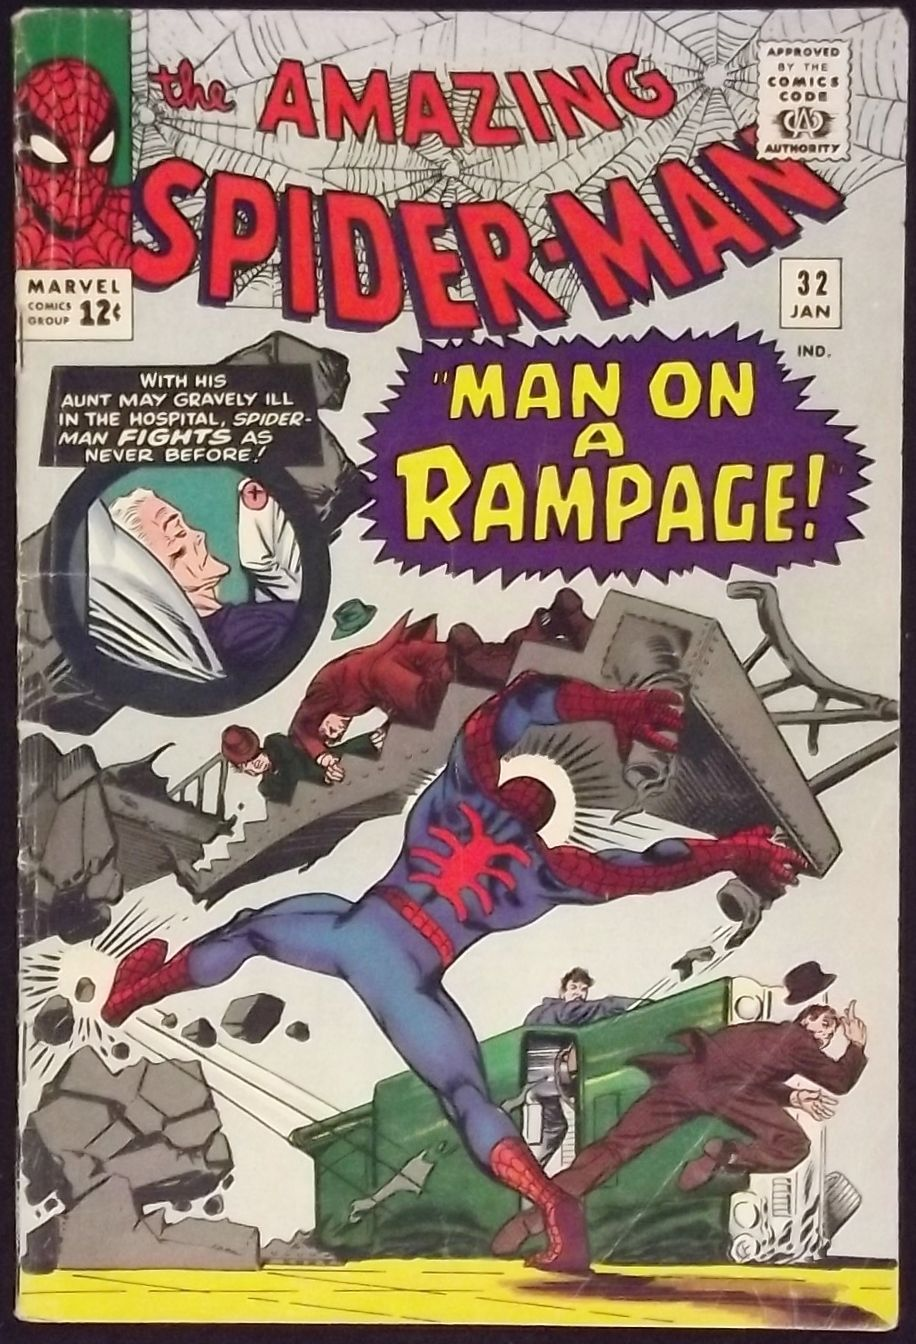 AMAZING SPIDER-MAN #32 VG/FN CLASSIC STEVE DITKO - Silver Age Comics